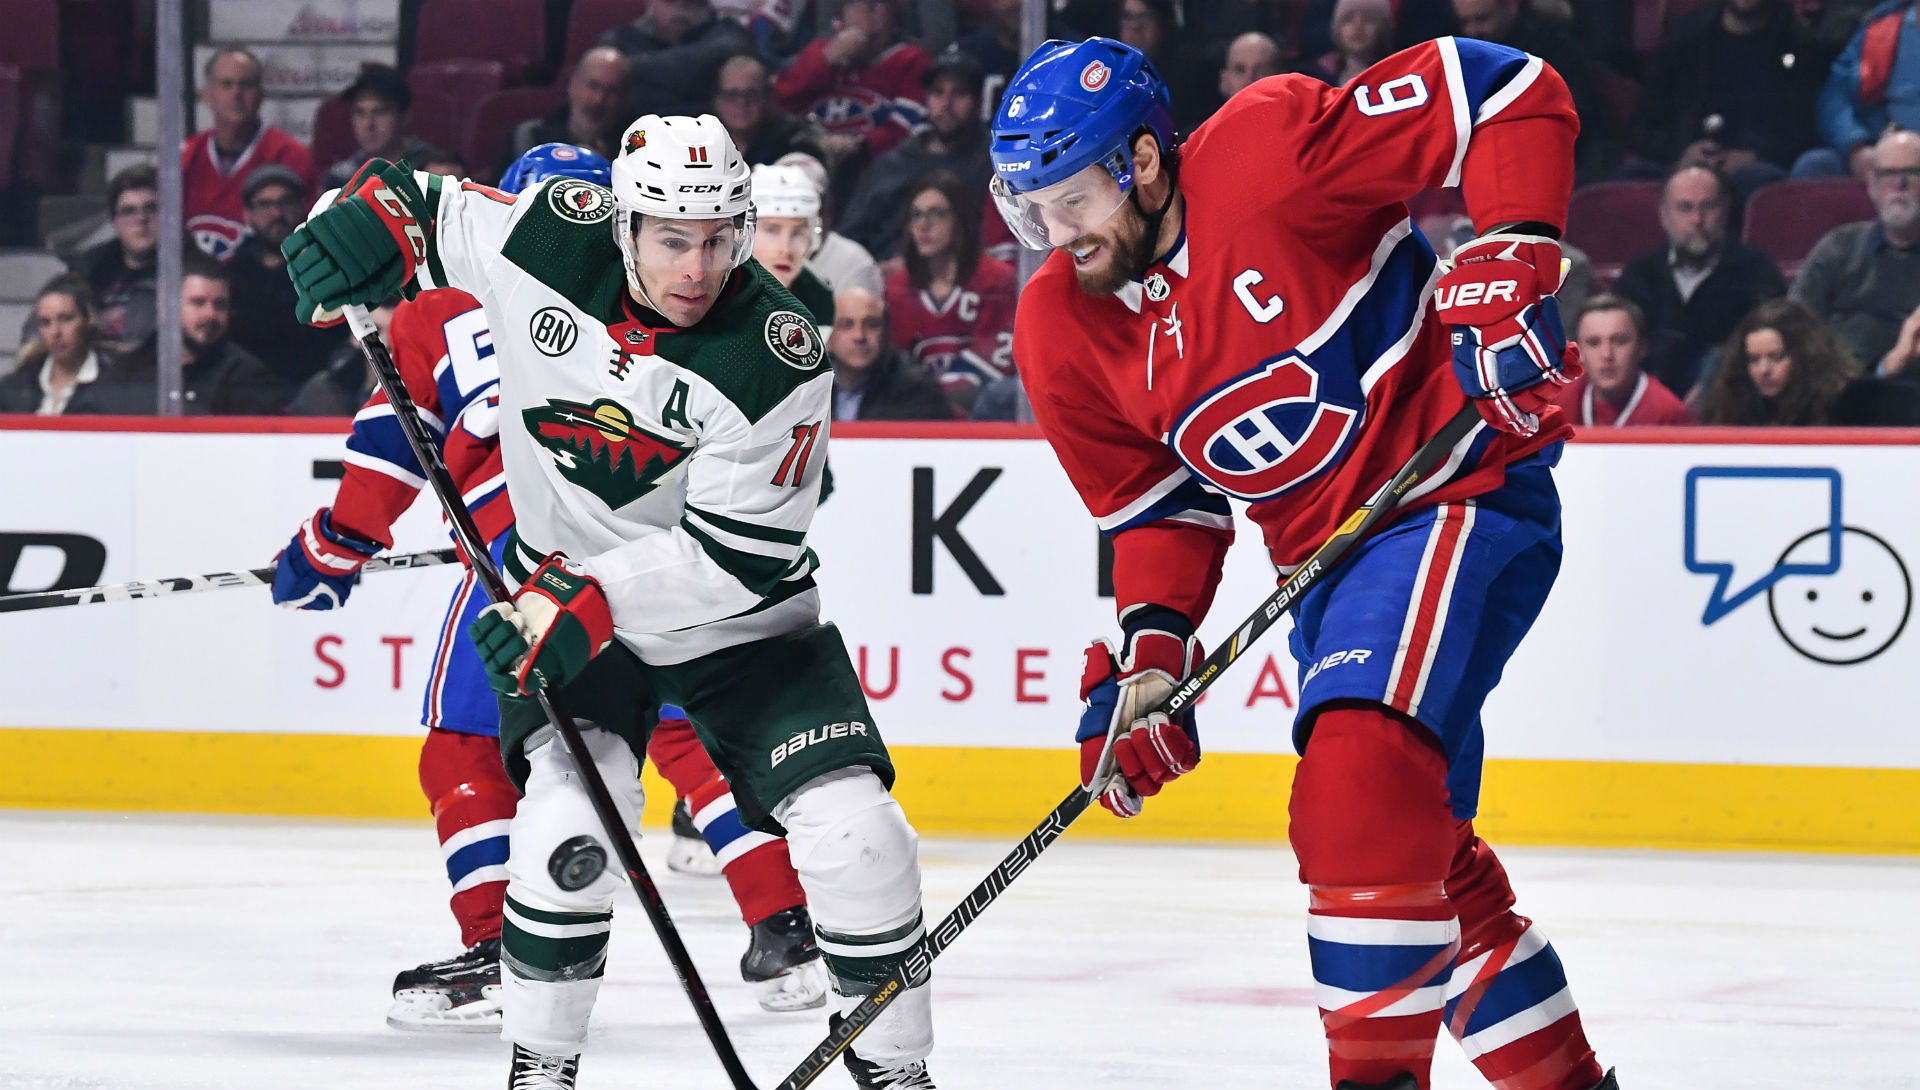 6a8f8f19cd3 Canadiens captain Shea Weber leaves game after taking puck to face ...